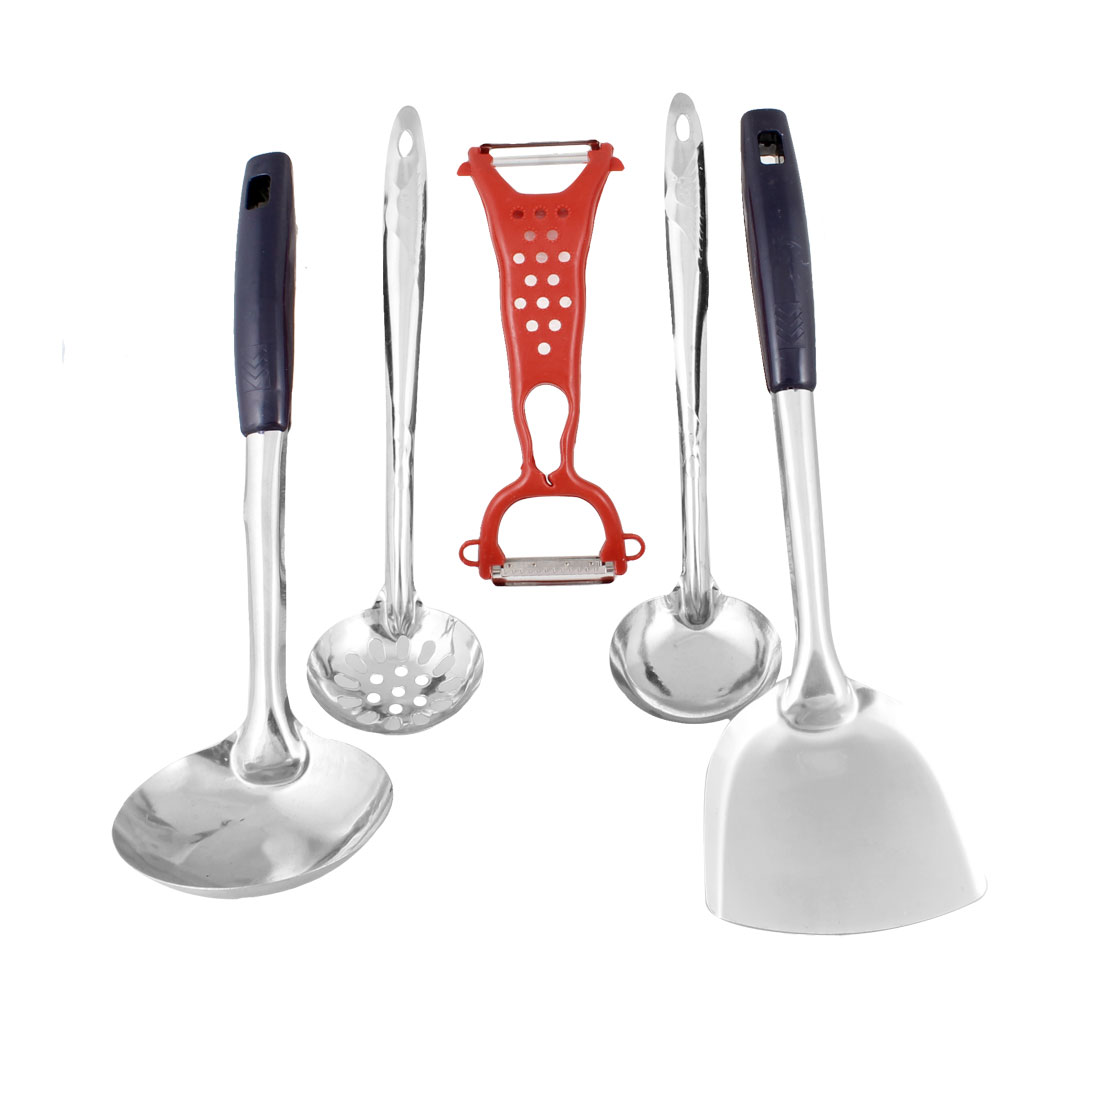 Plastic Handle Ladles Spatula Red Fruit Vegetable Peeler Kitchen Ware Set 5 in 1